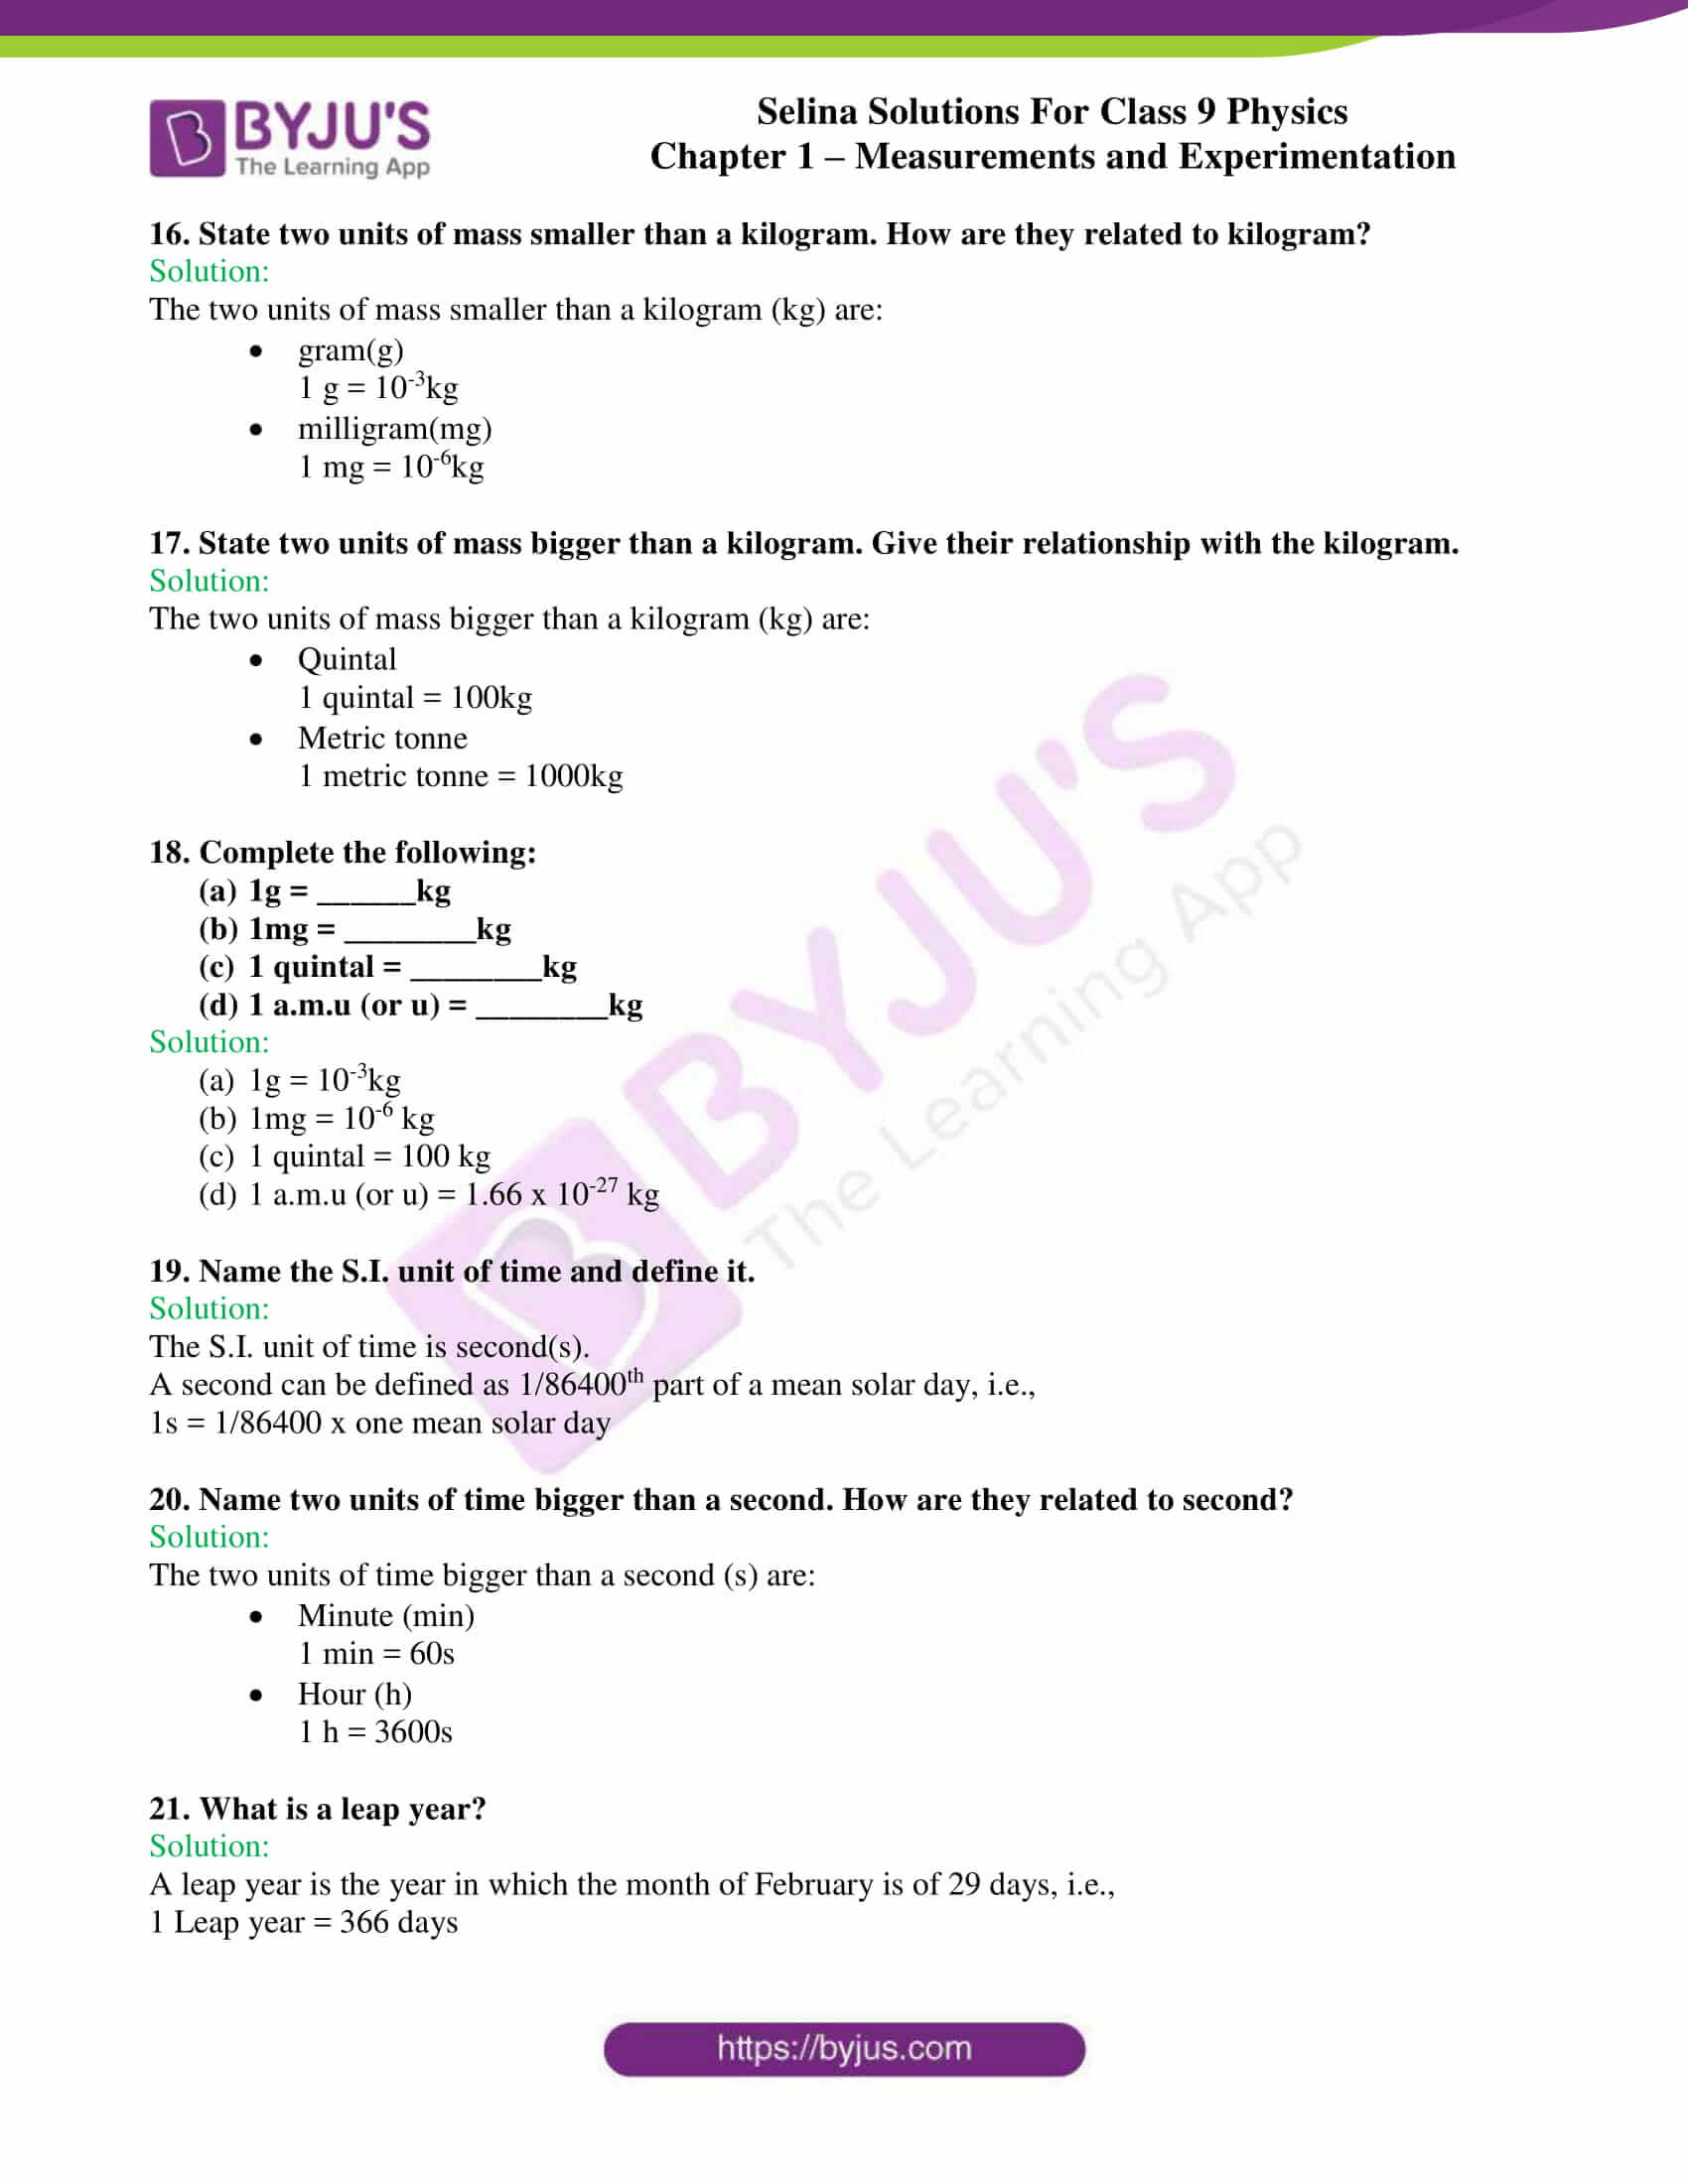 selina solutions class 9 physics chapter 1 Measurements and Experimentation part 04